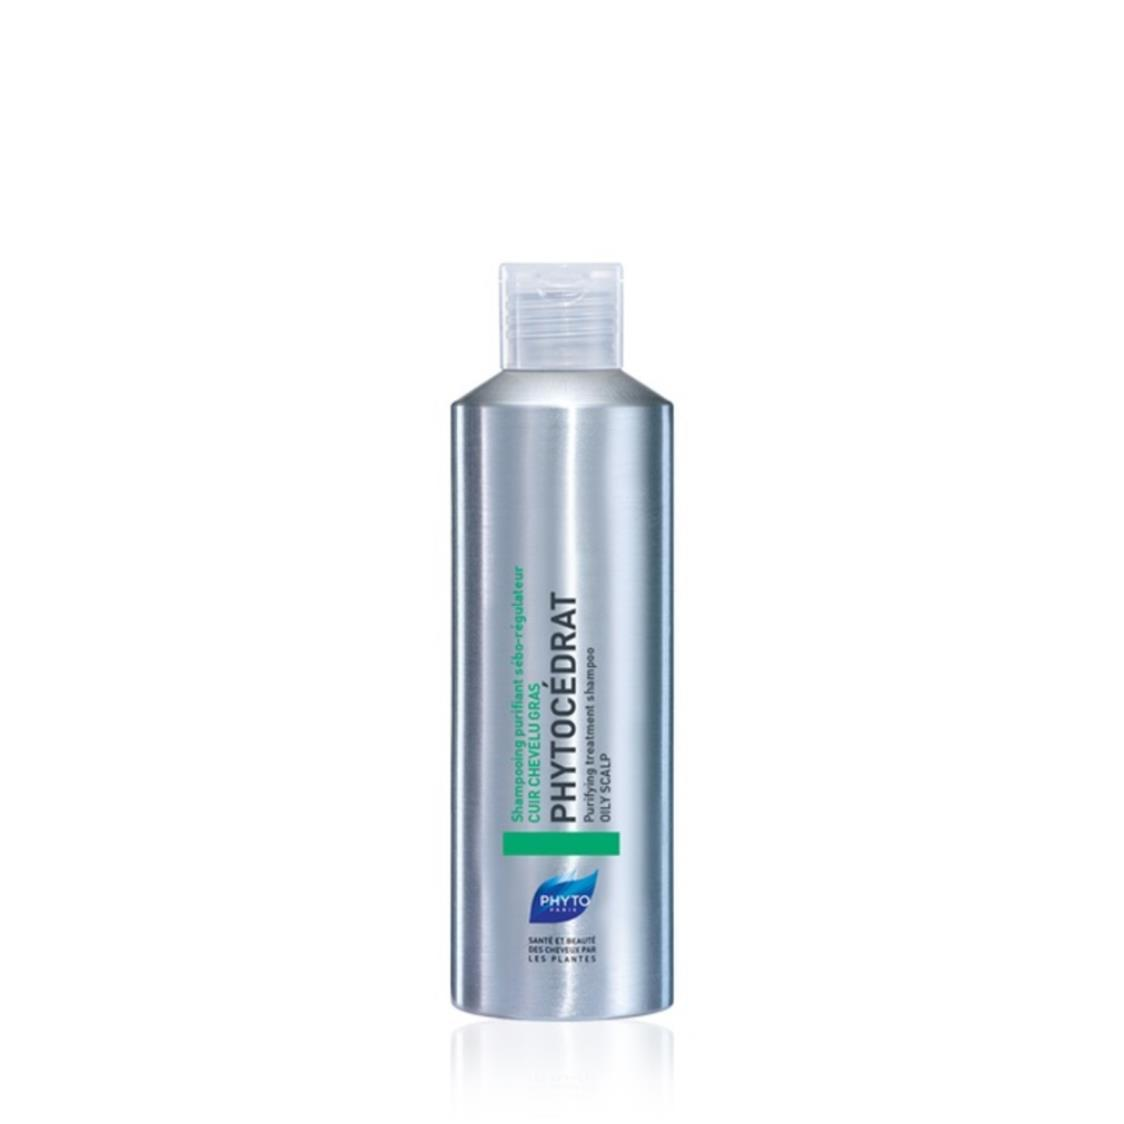 Phytocedrat Sebo-Regulating Shampoo